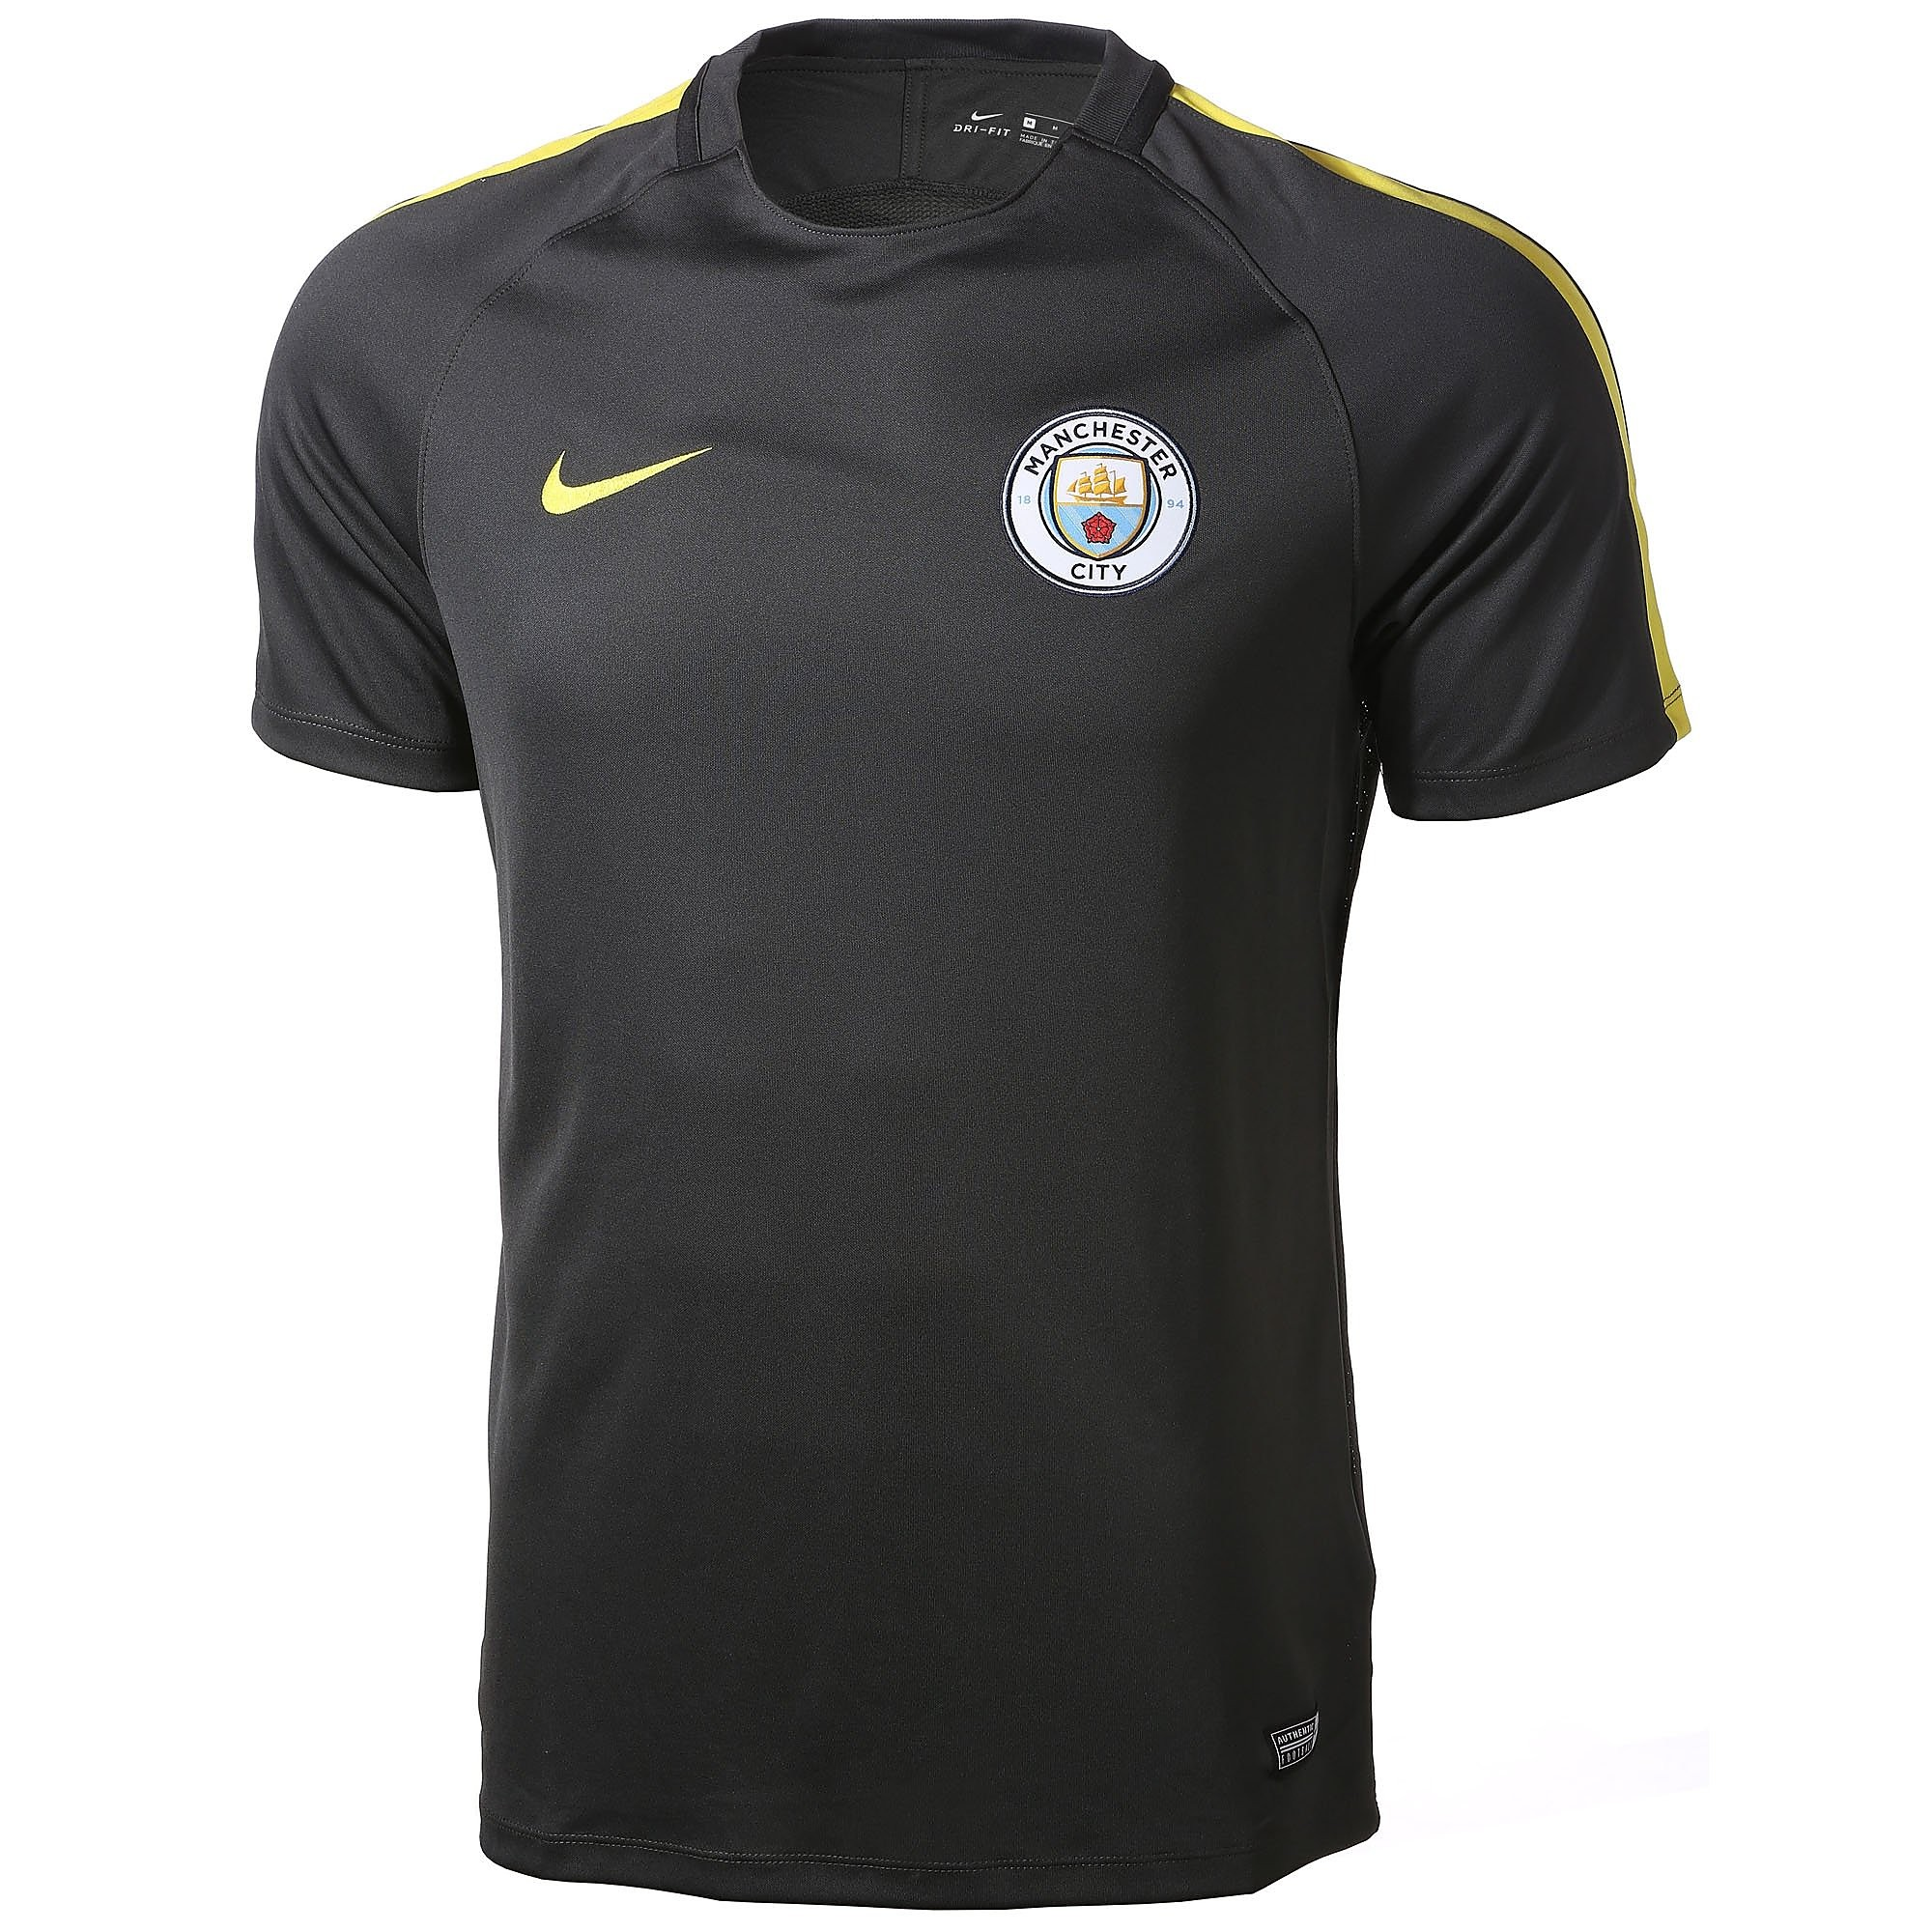 Nike Manchester City Fc Dry Top